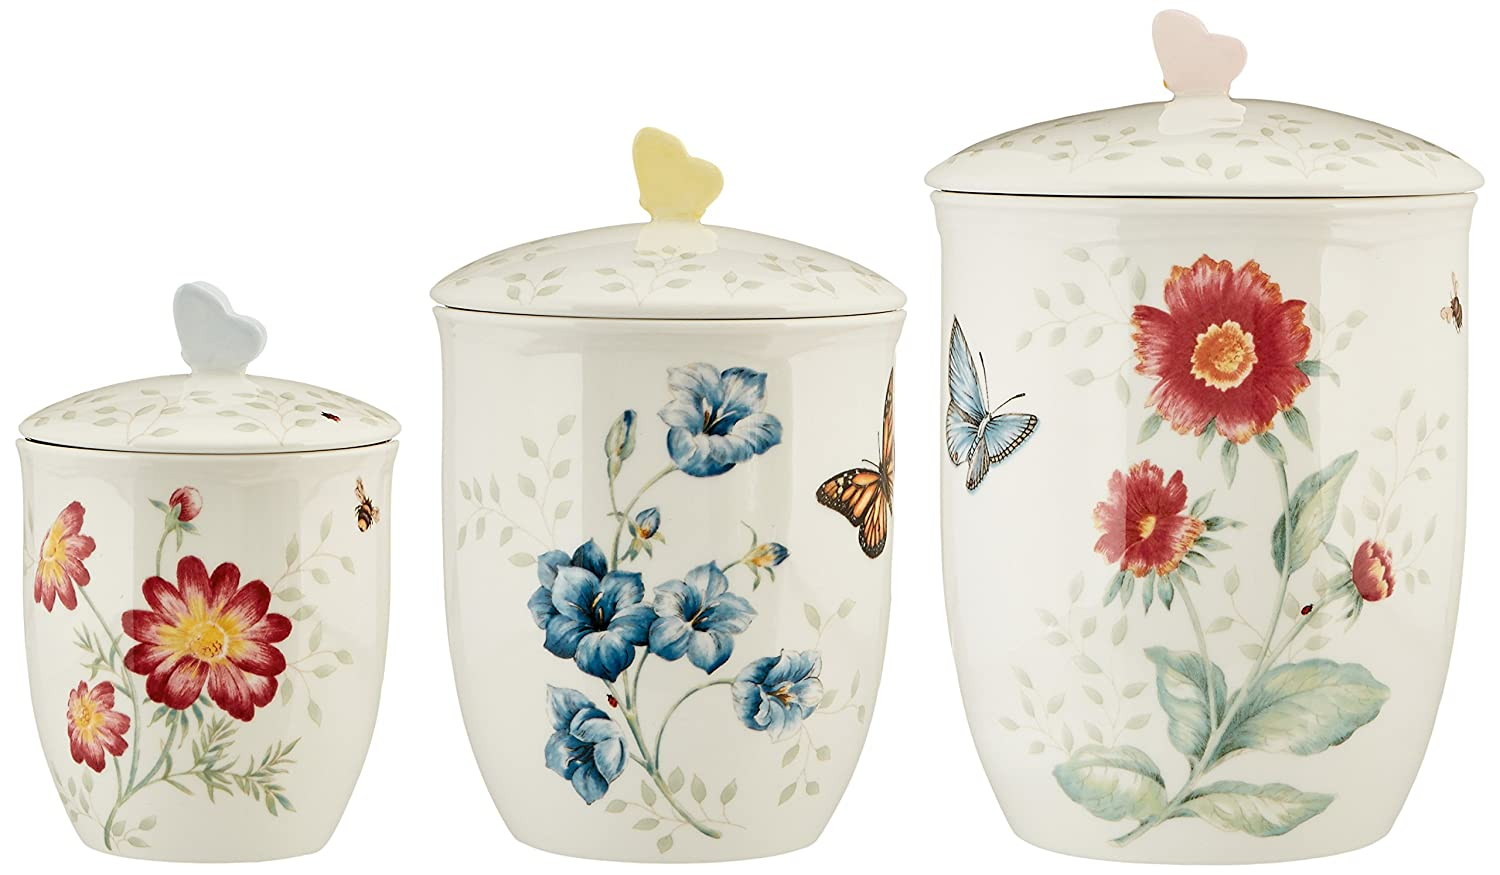 Lenox 3 Piece Butterfly Meadow Canister Set, White 813478